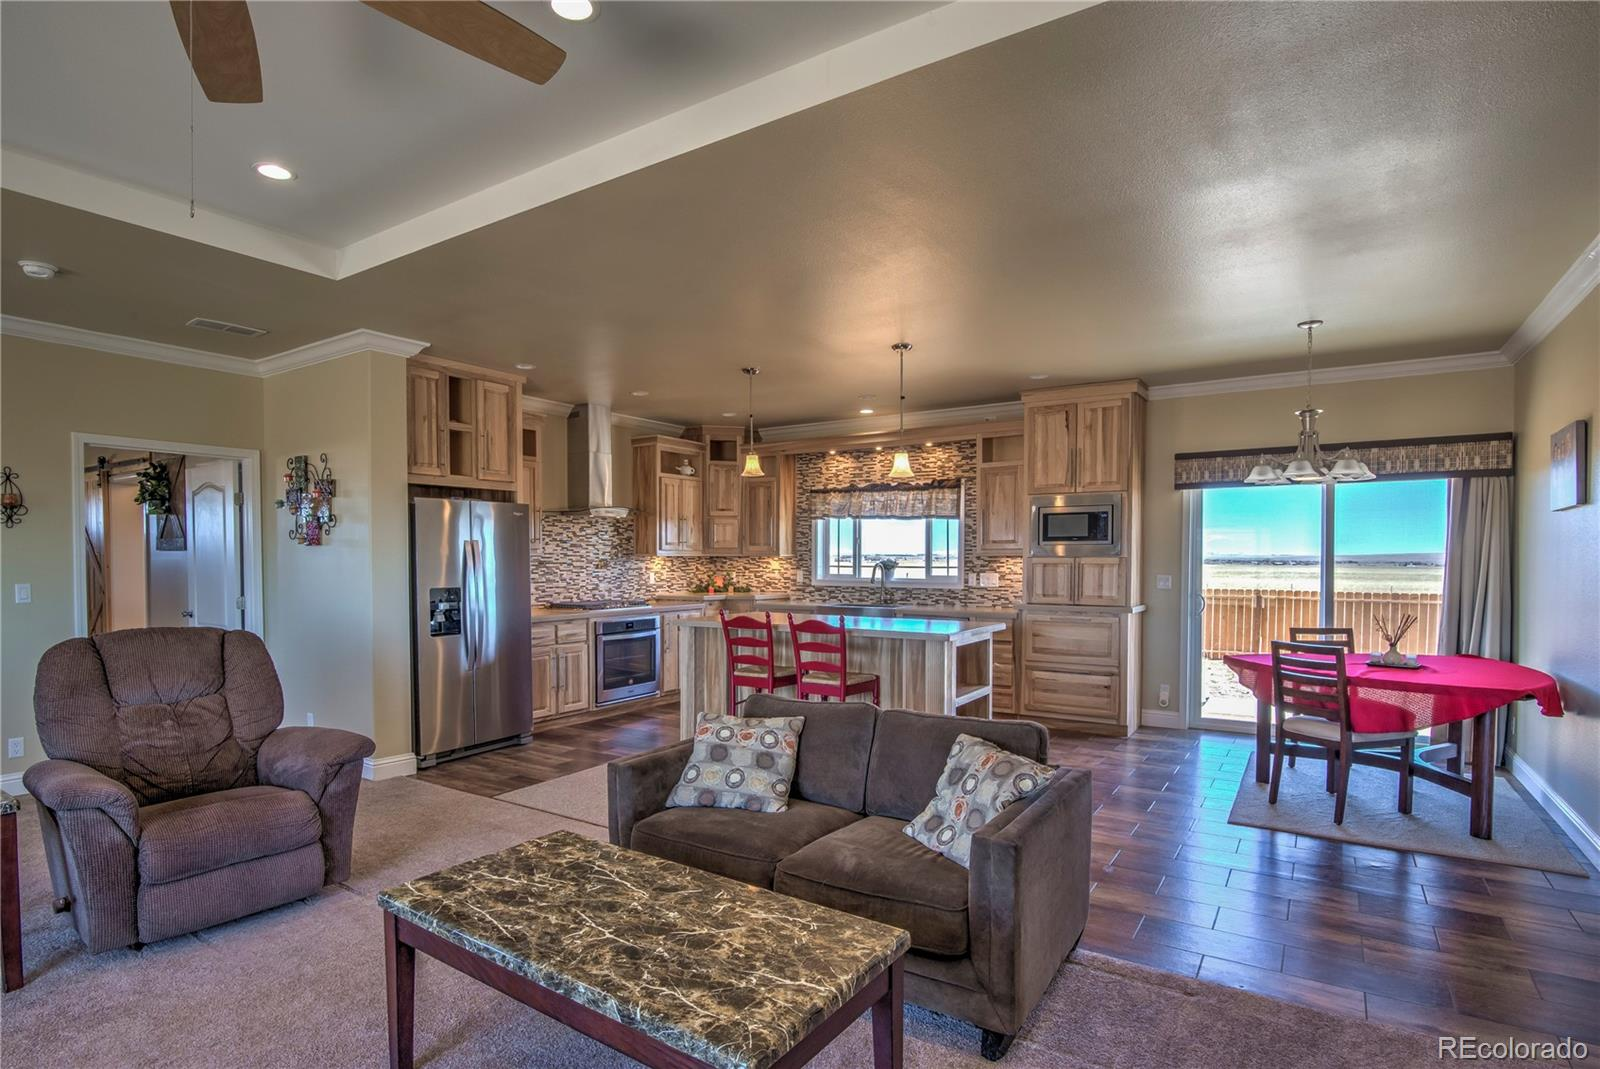 MLS# 8441040 - 8 - 595 Spotted Owl Way, Calhan, CO 80808